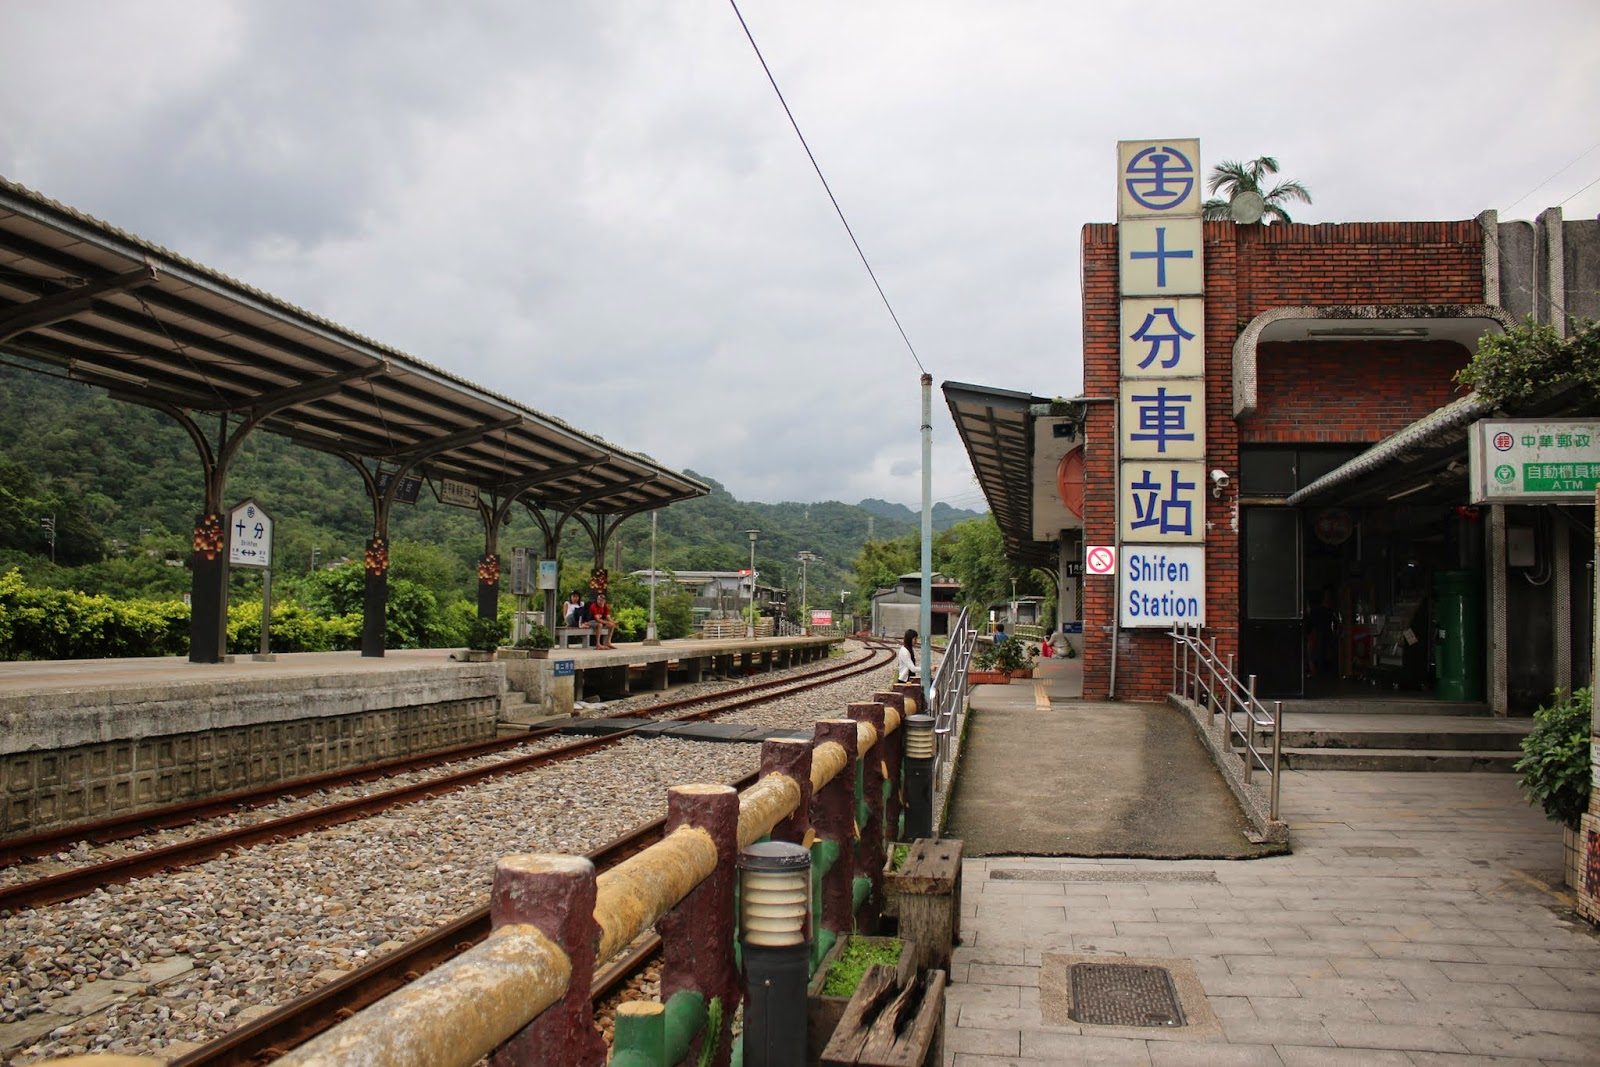 Shifen Station at Pingxi District of New Taipei City of Taiwan